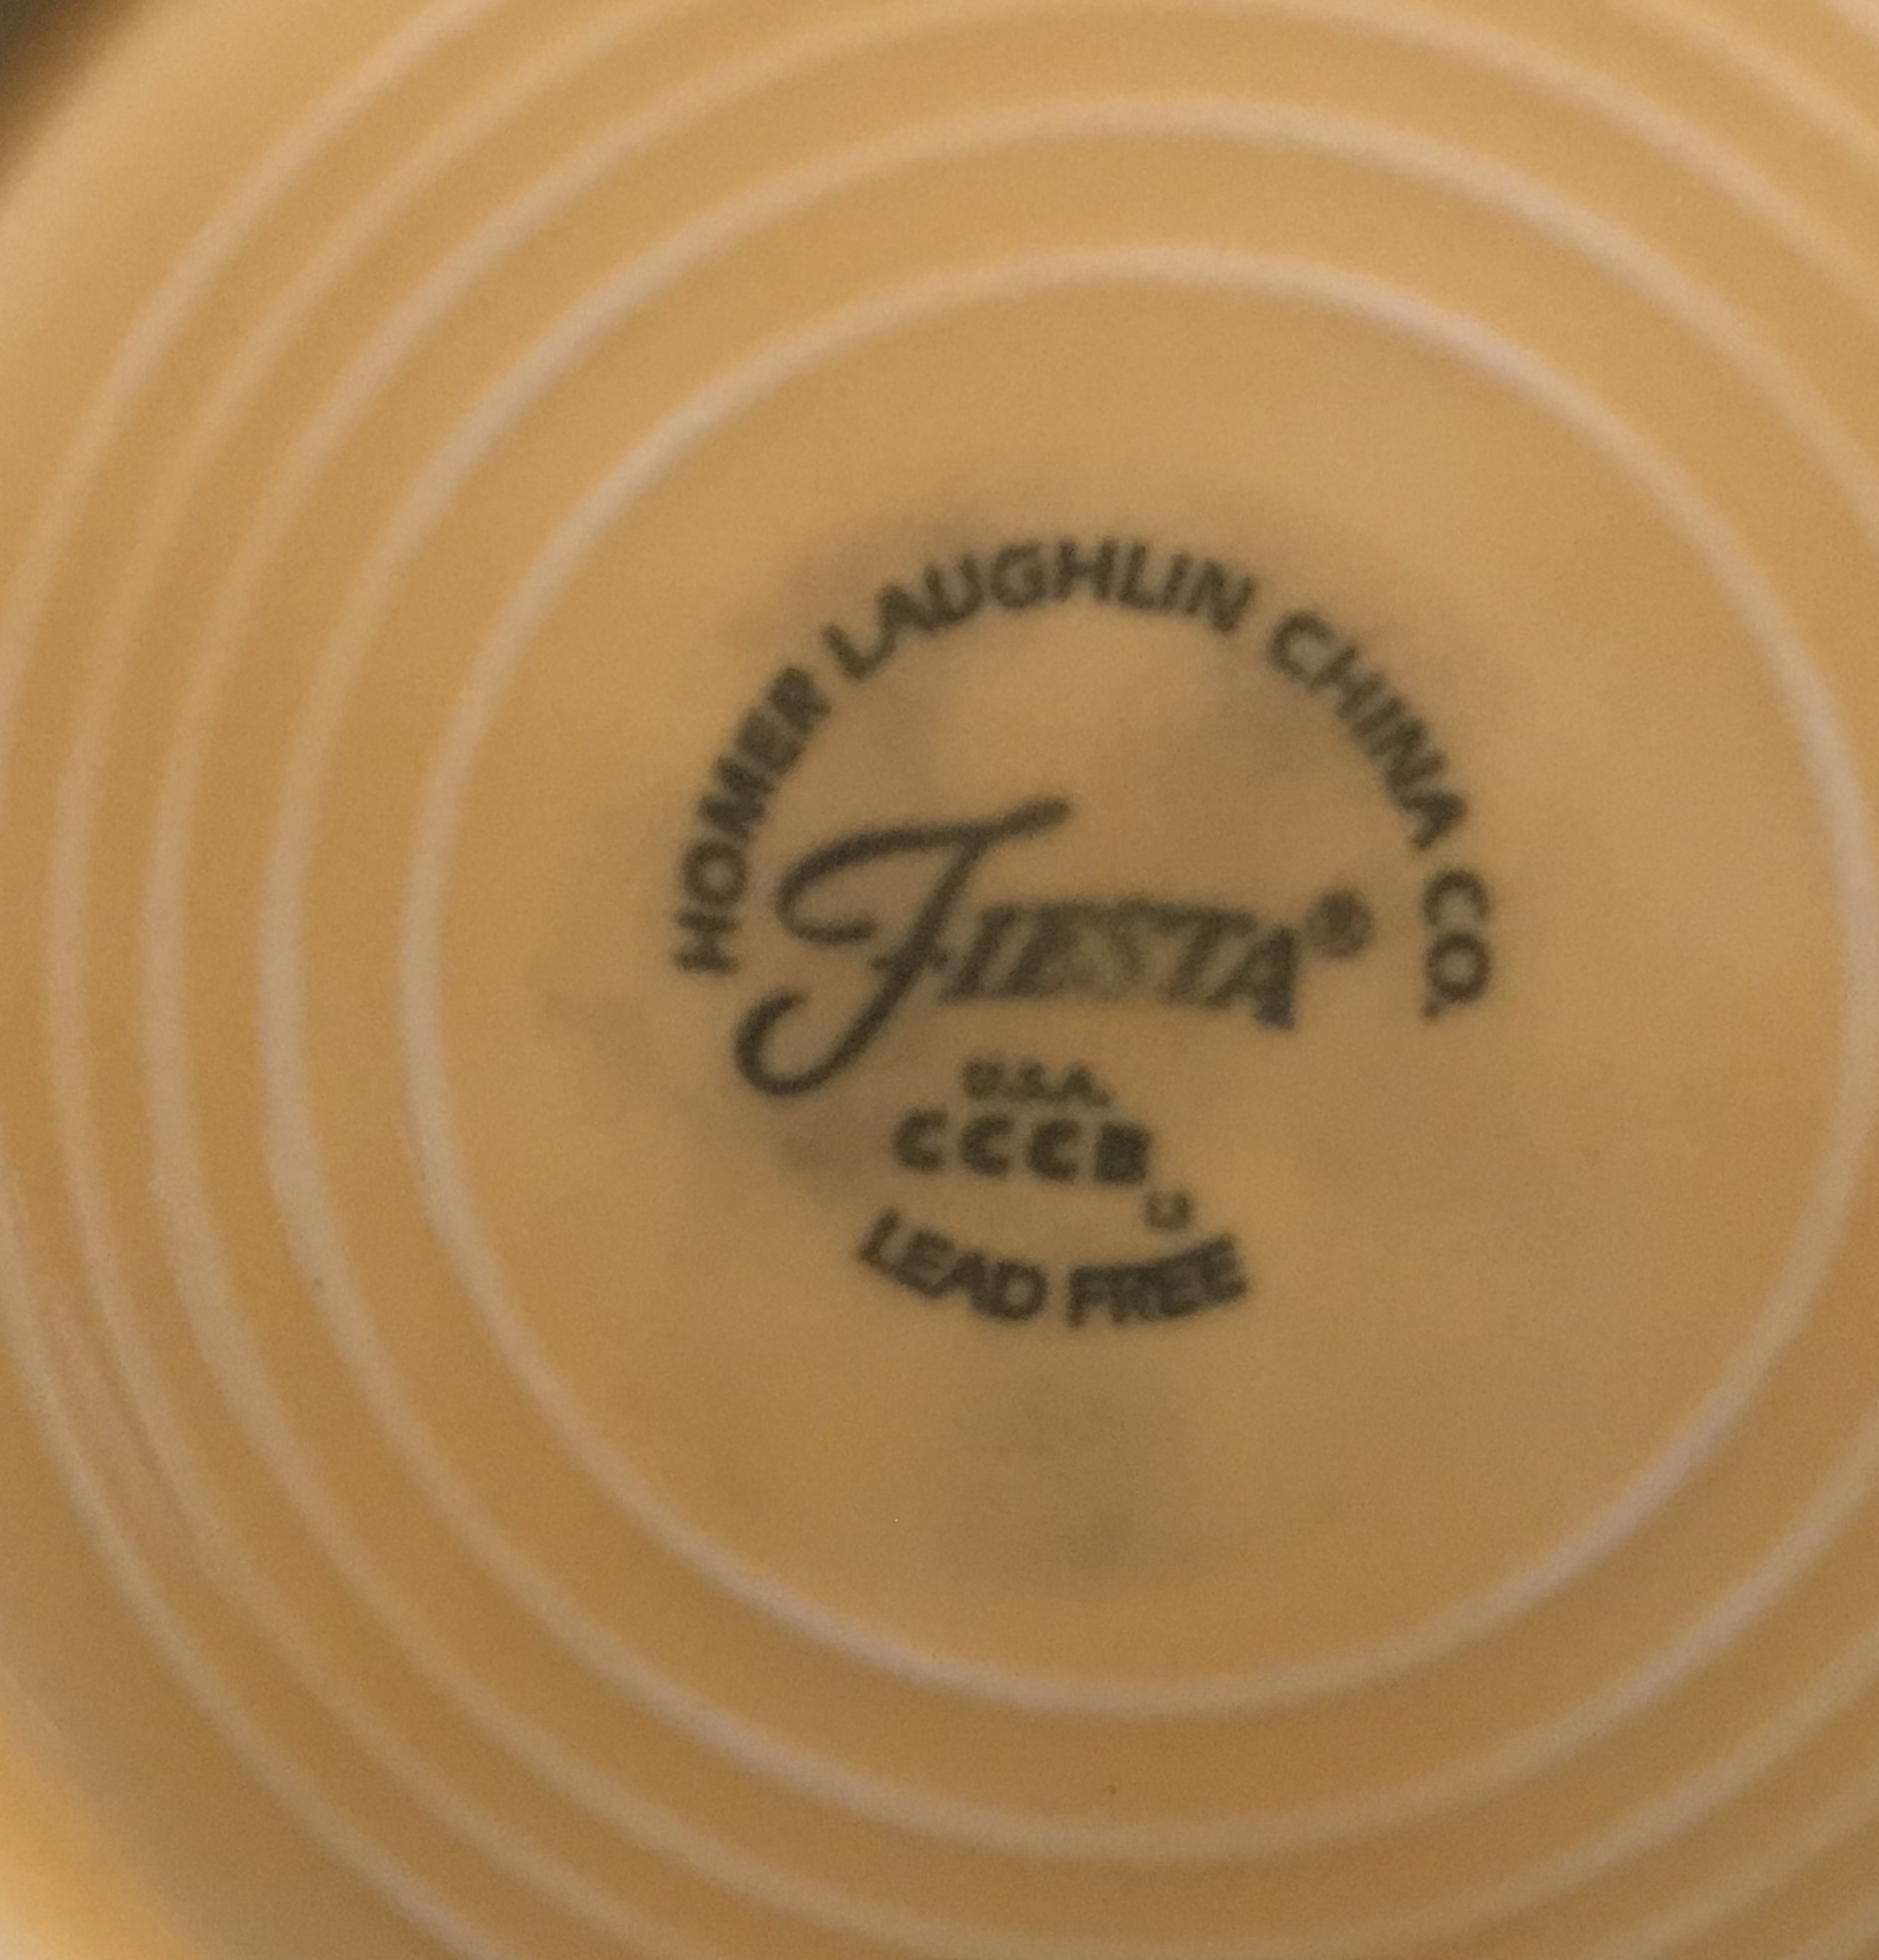 """Modern Yellow Fiesta Homer Laughlin China Company Small Plate. Marked """"Lead Free"""". Non-Detect (negative) for Lead, Cadmium, Mercury and Arsenic!"""